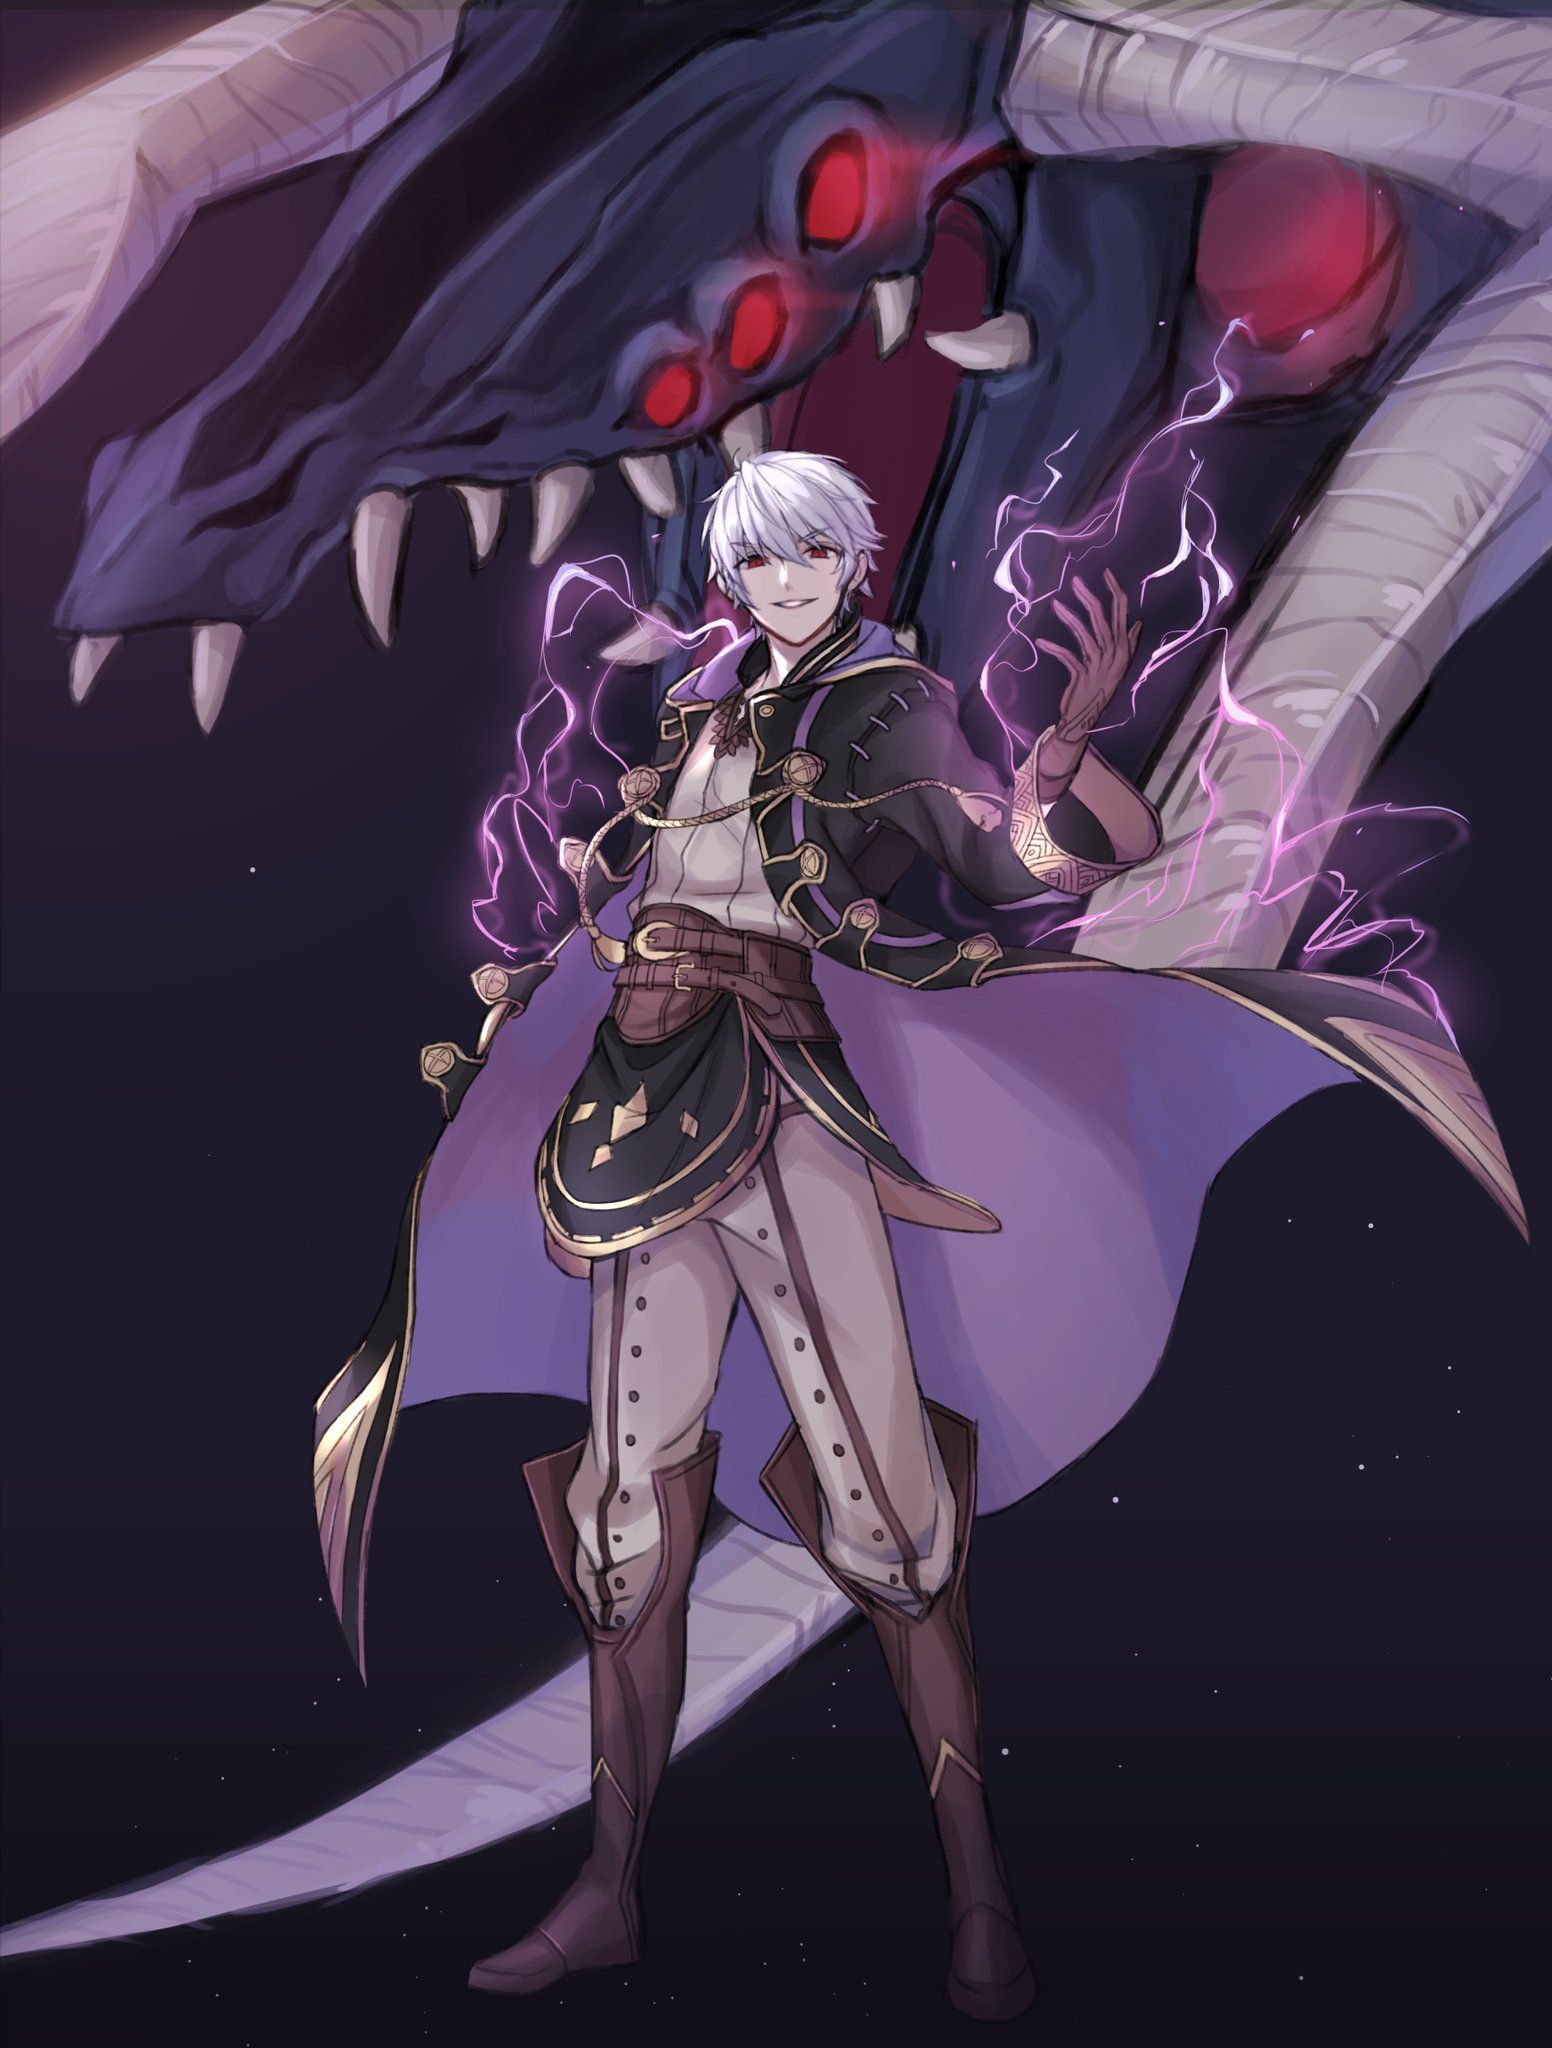 Whim On Twitter Come Join The Dark Side Fire Emblem Fire Emblem Heroes Fire Emblem Fates